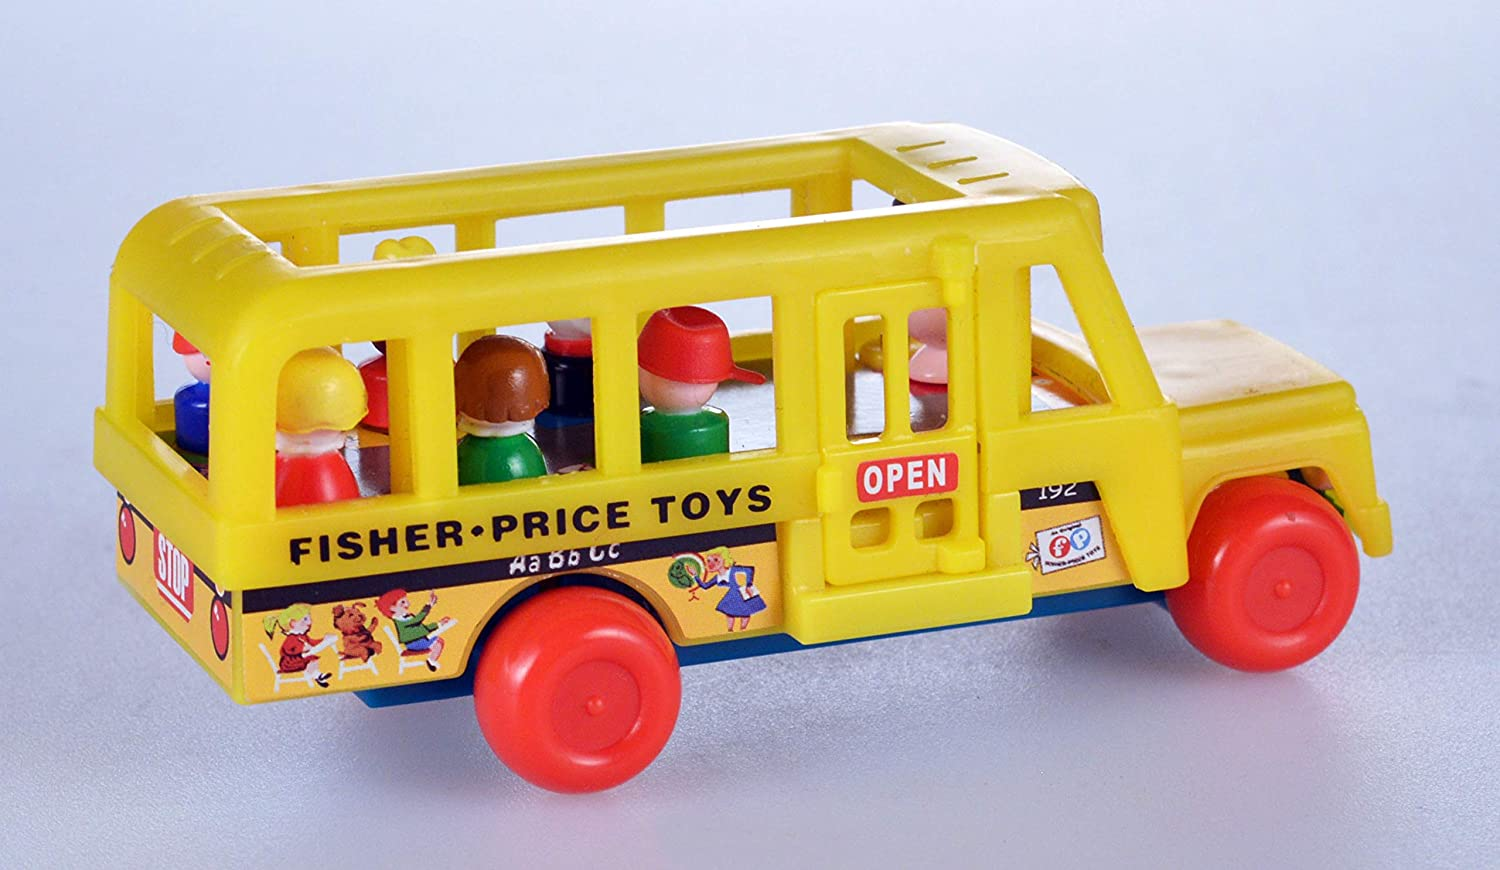 World's Smallest Fisher Price School Bus